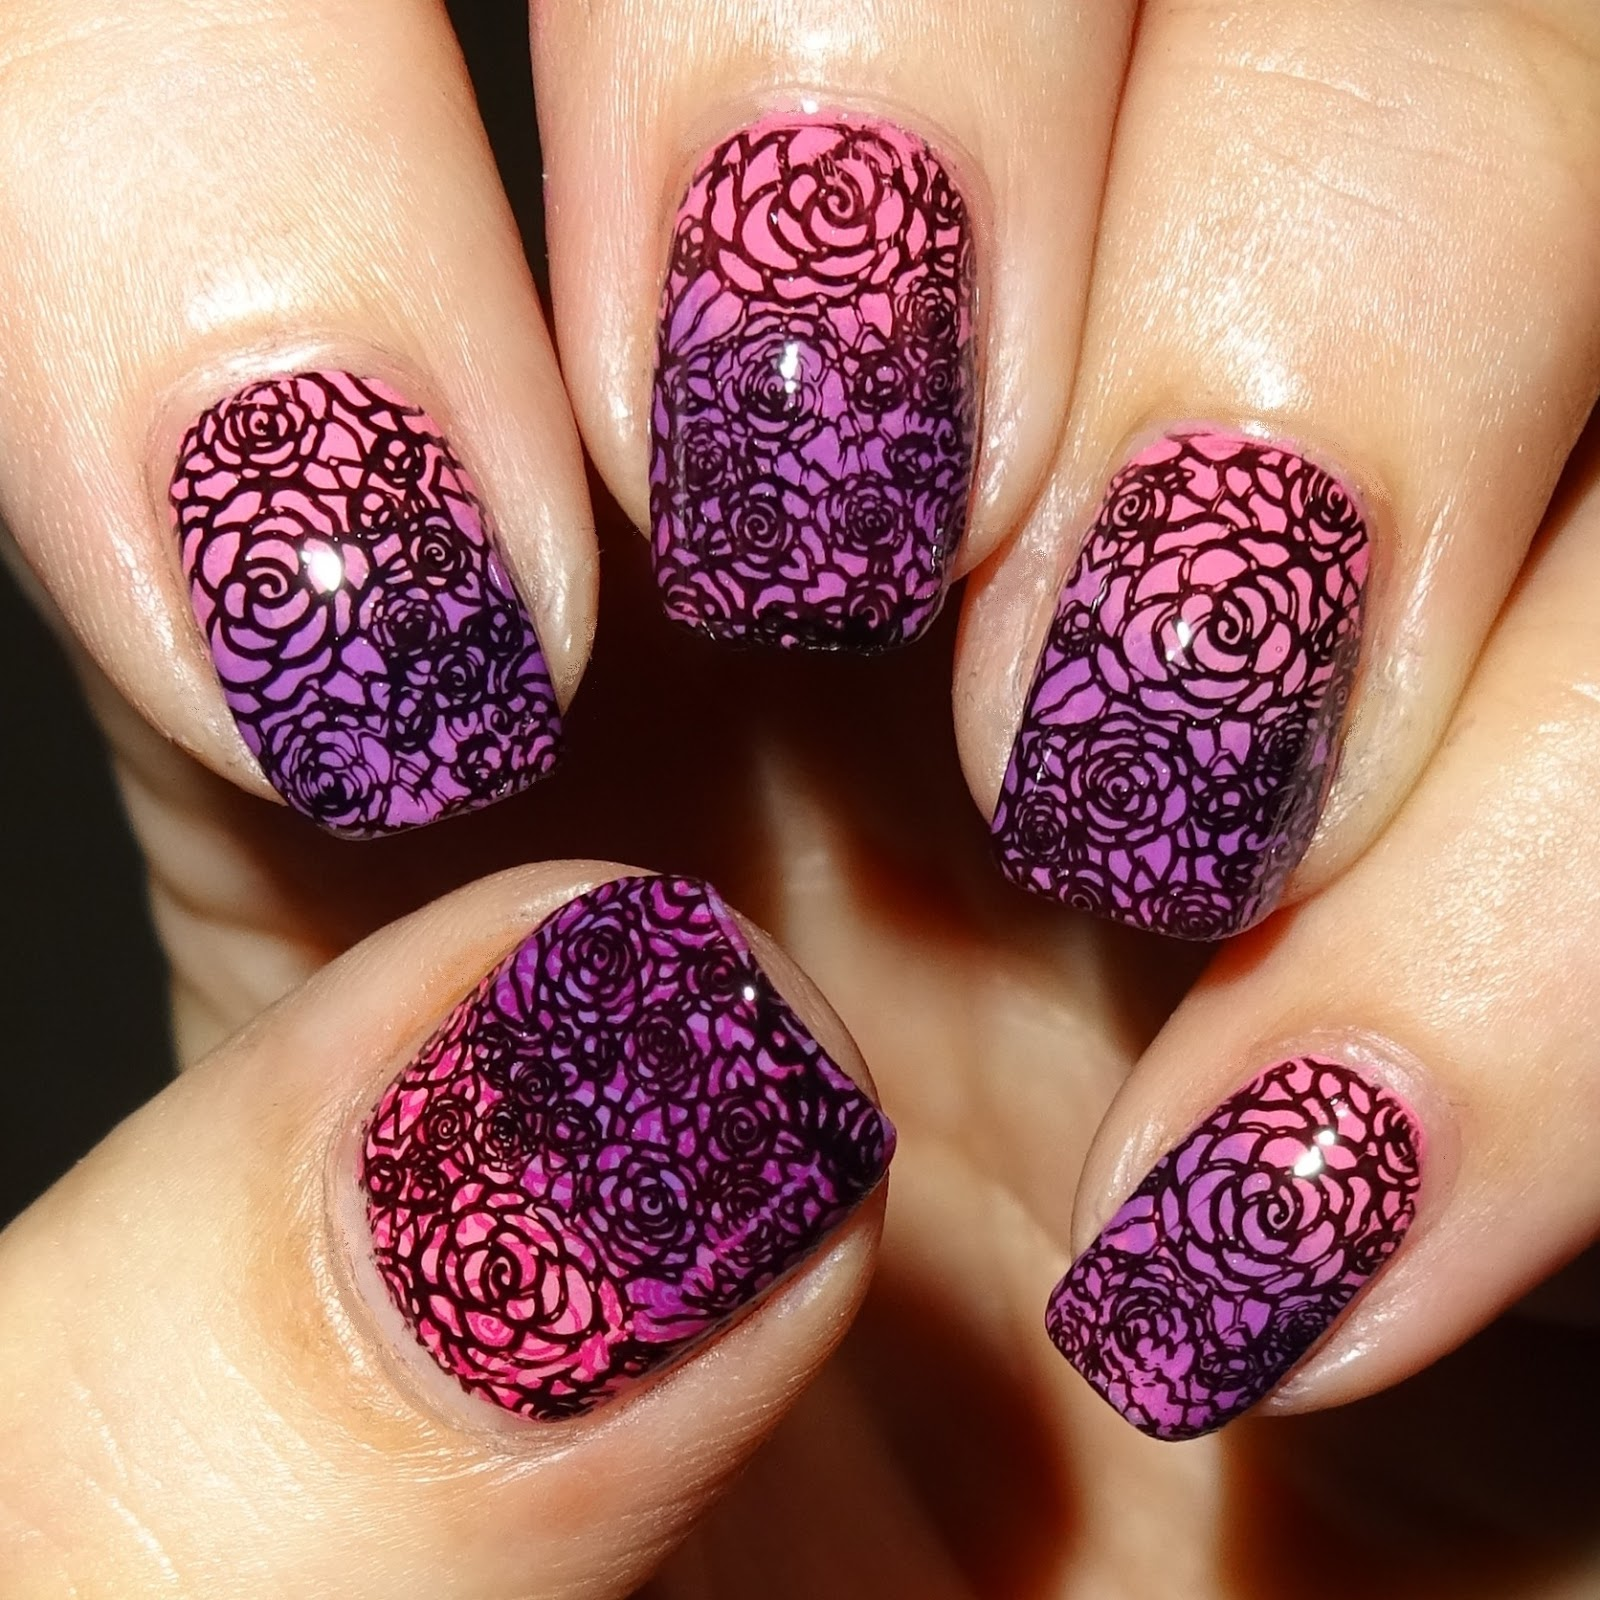 Wendys delights moyou nails stamping plate 462 moyou nails stamping polishes are 699 and stamping plates from 499 fancy a 20 discount on your order please use wendysp at checkout prinsesfo Choice Image